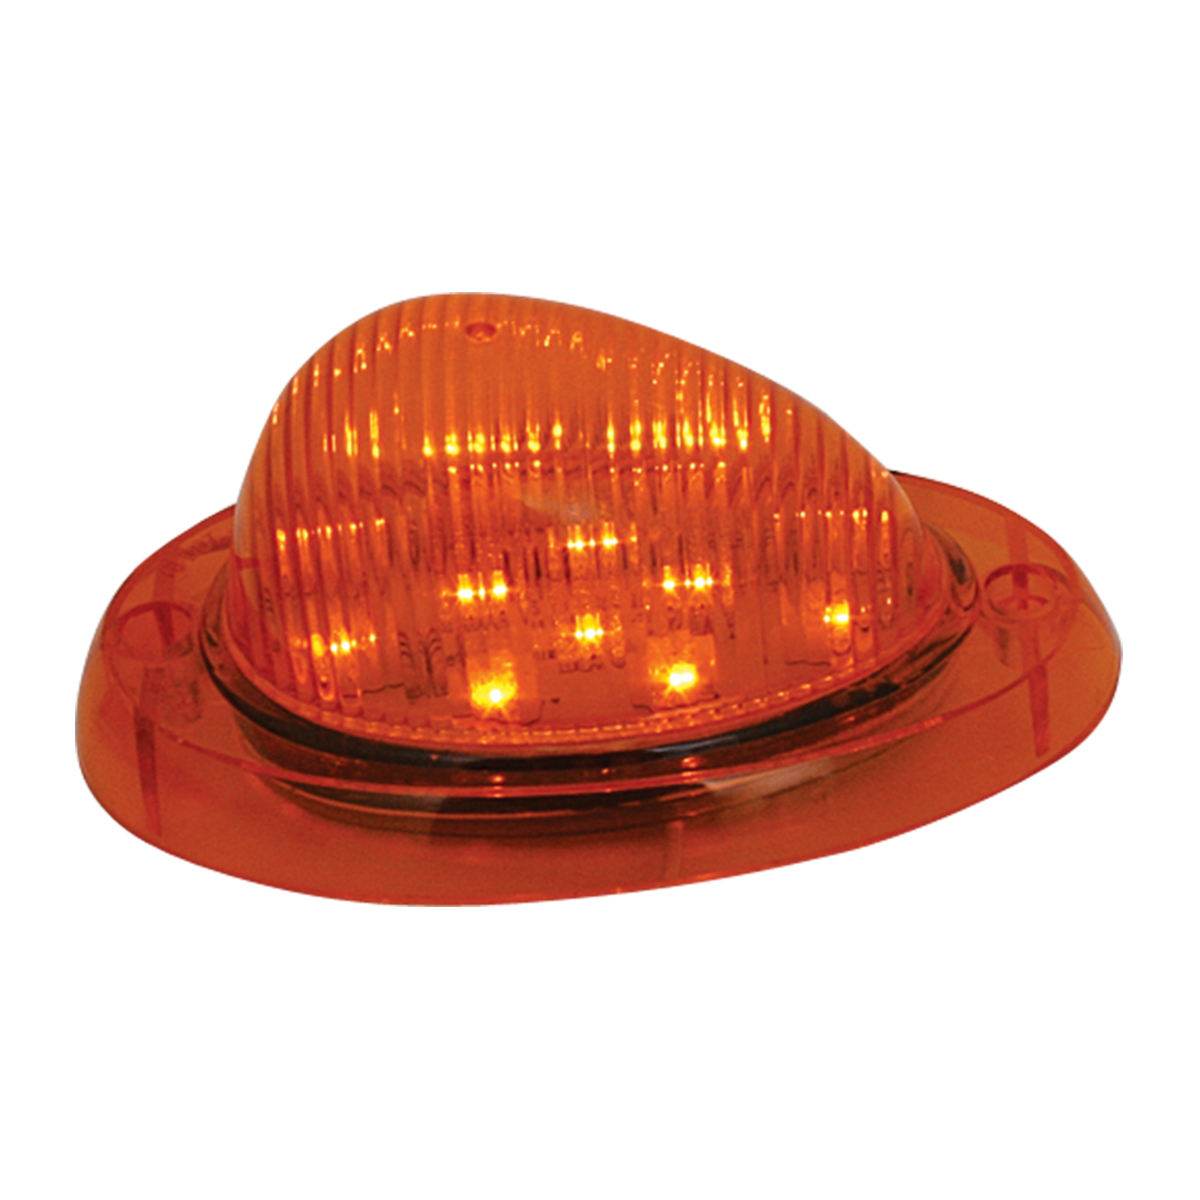 76370 Freightliner Side Marker/Turn LED Light in Amber/Amber